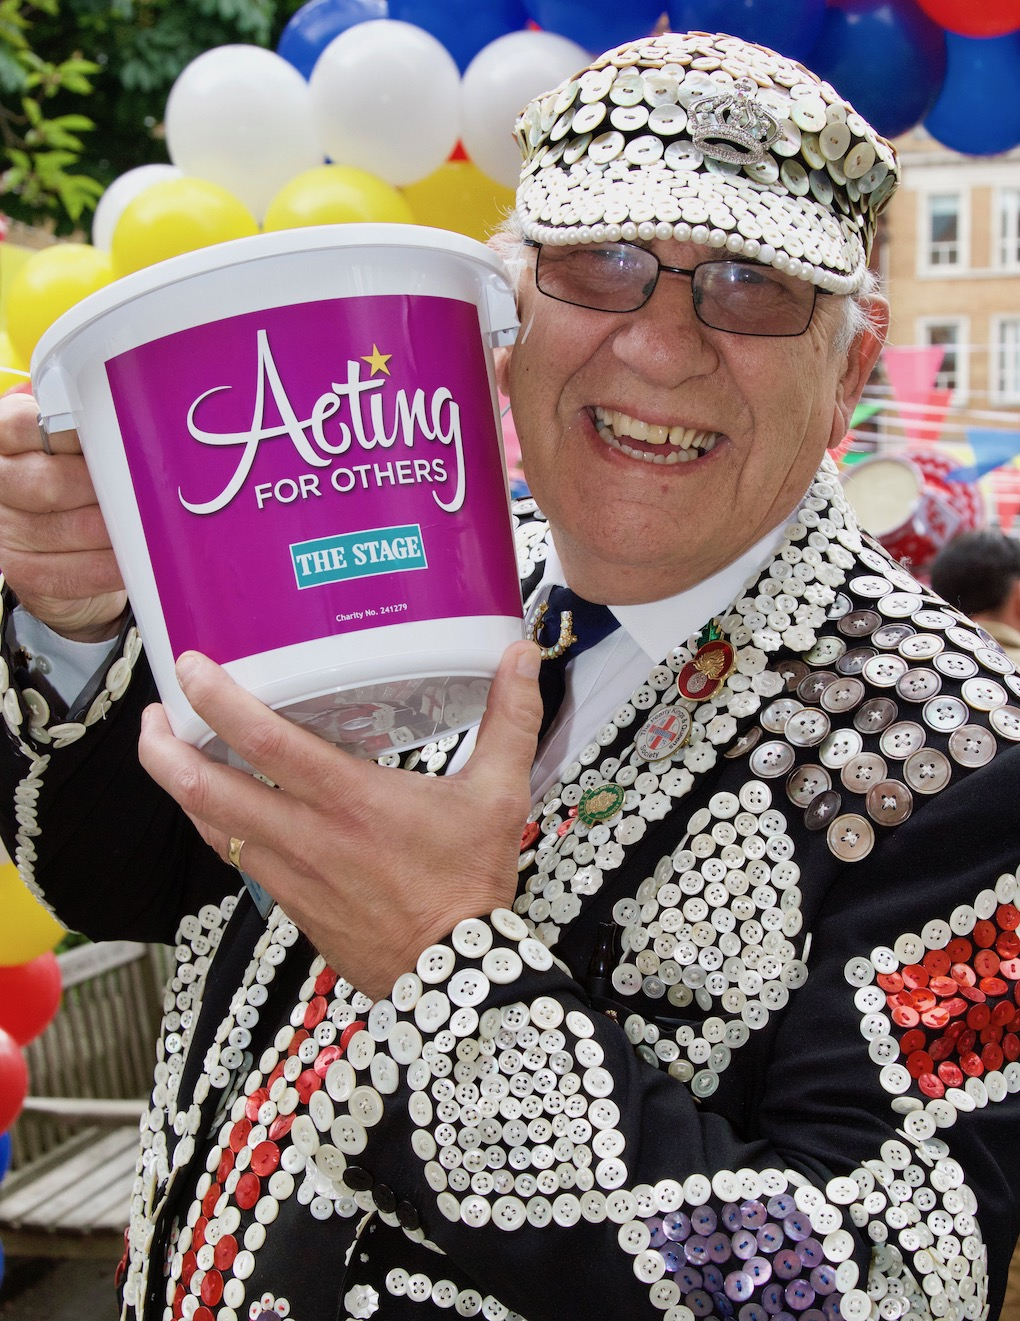 Our main fundraising event occurs every October, where we hold bucket collections in theatres across the country.